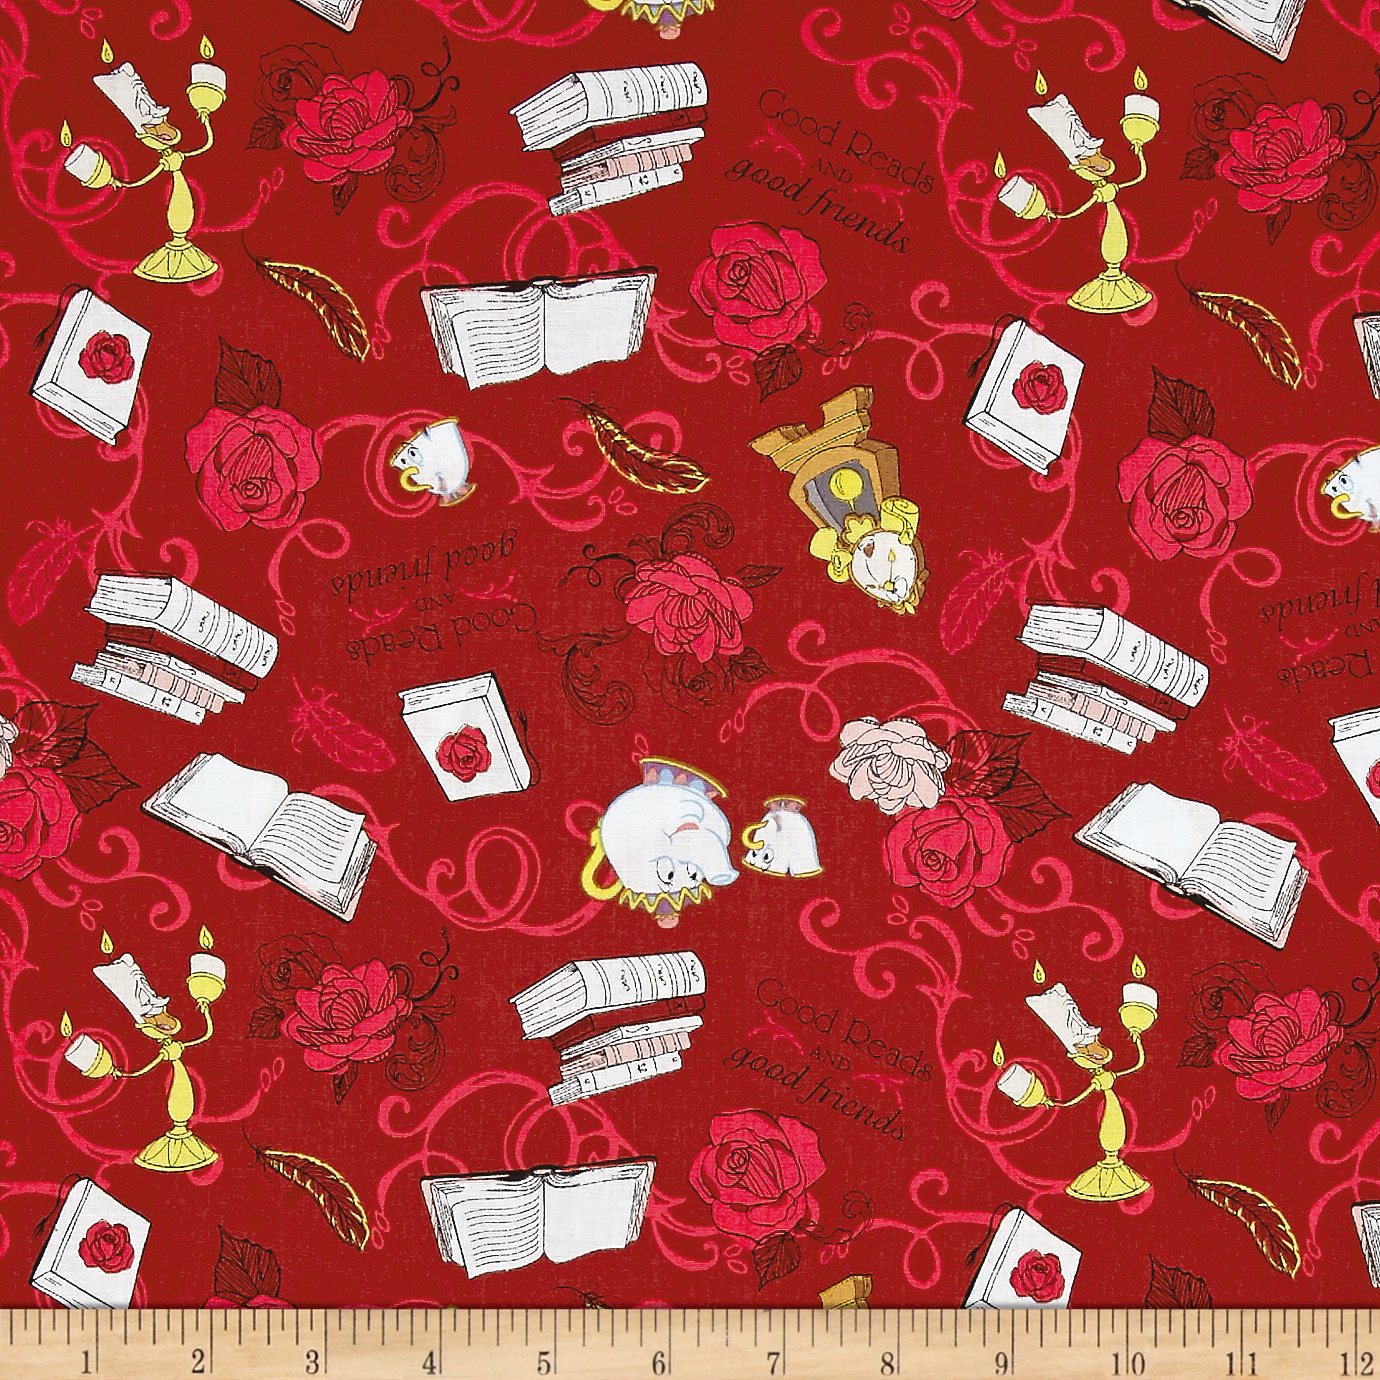 Disney Beauty and the Beast Friends Dark Red Fabric by Eugene in USA